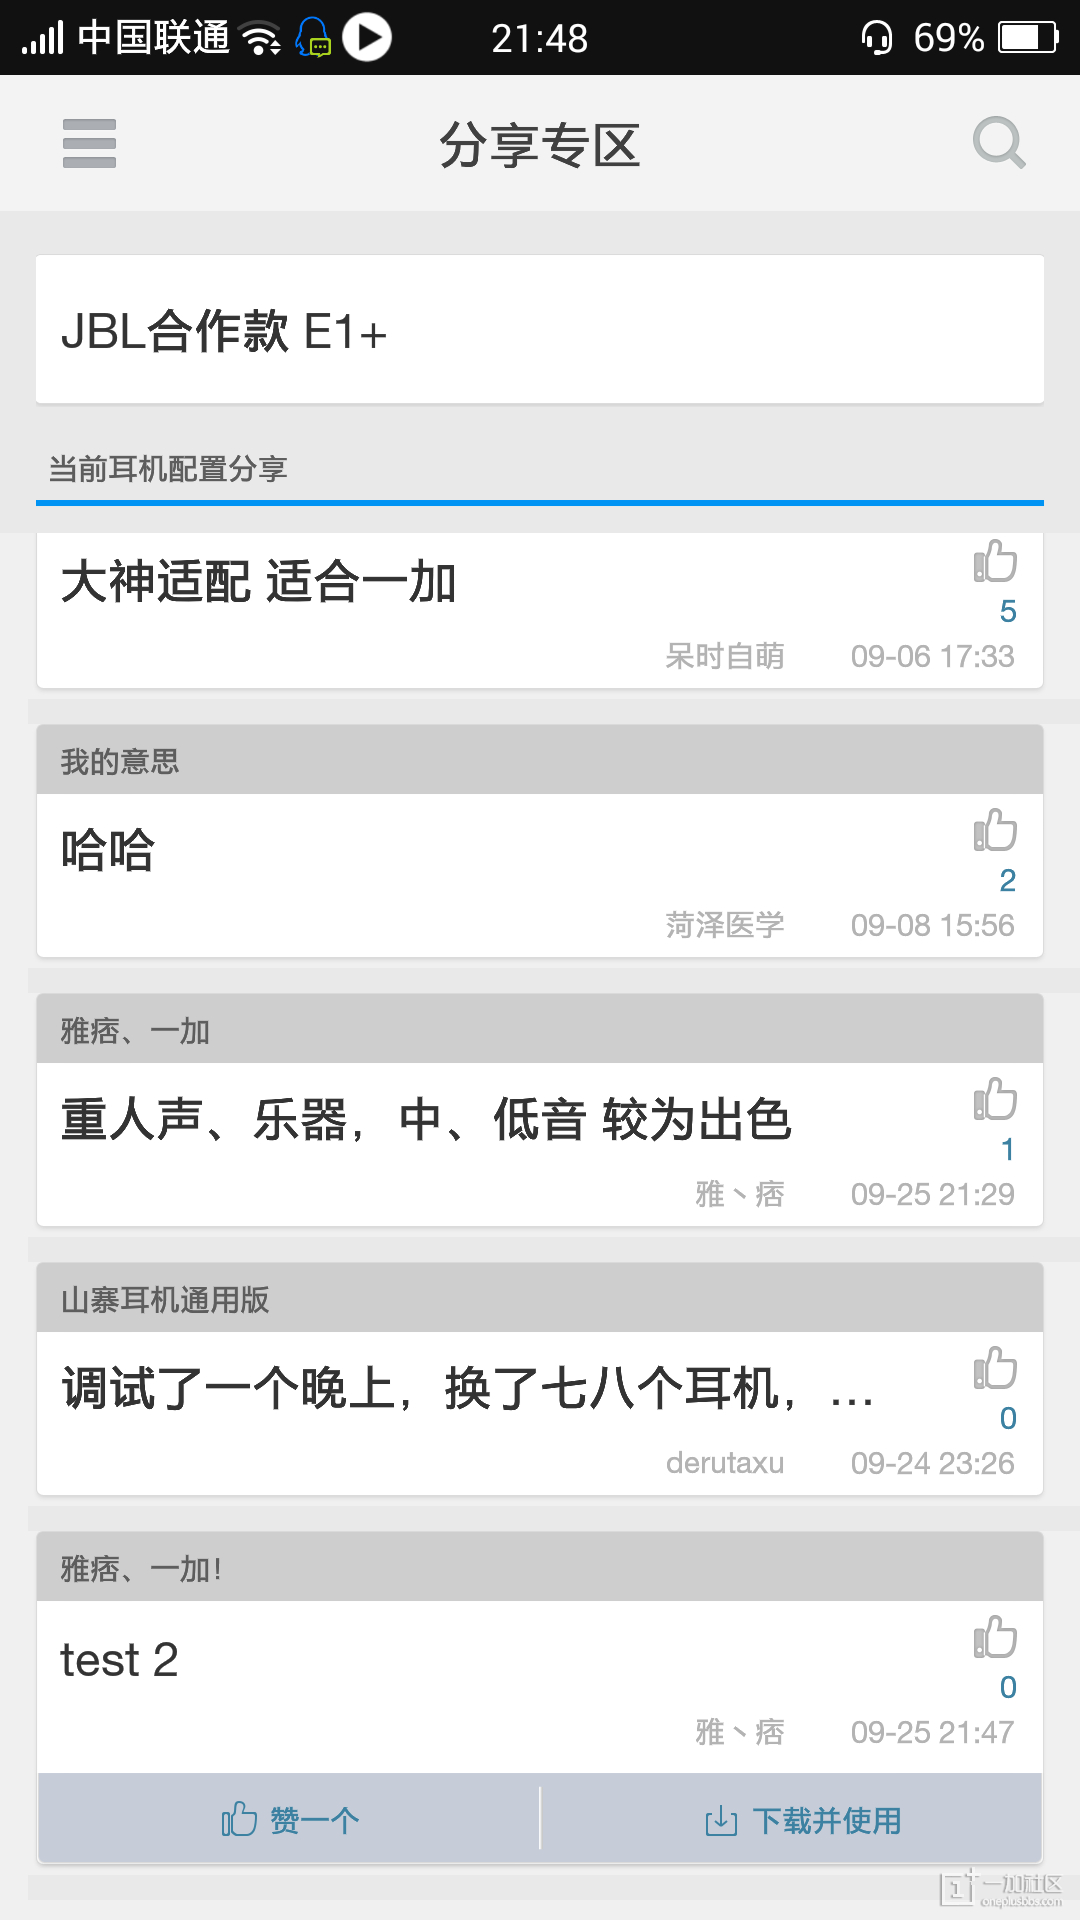 Screenshot_2014-09-25-21-48-27-966.png